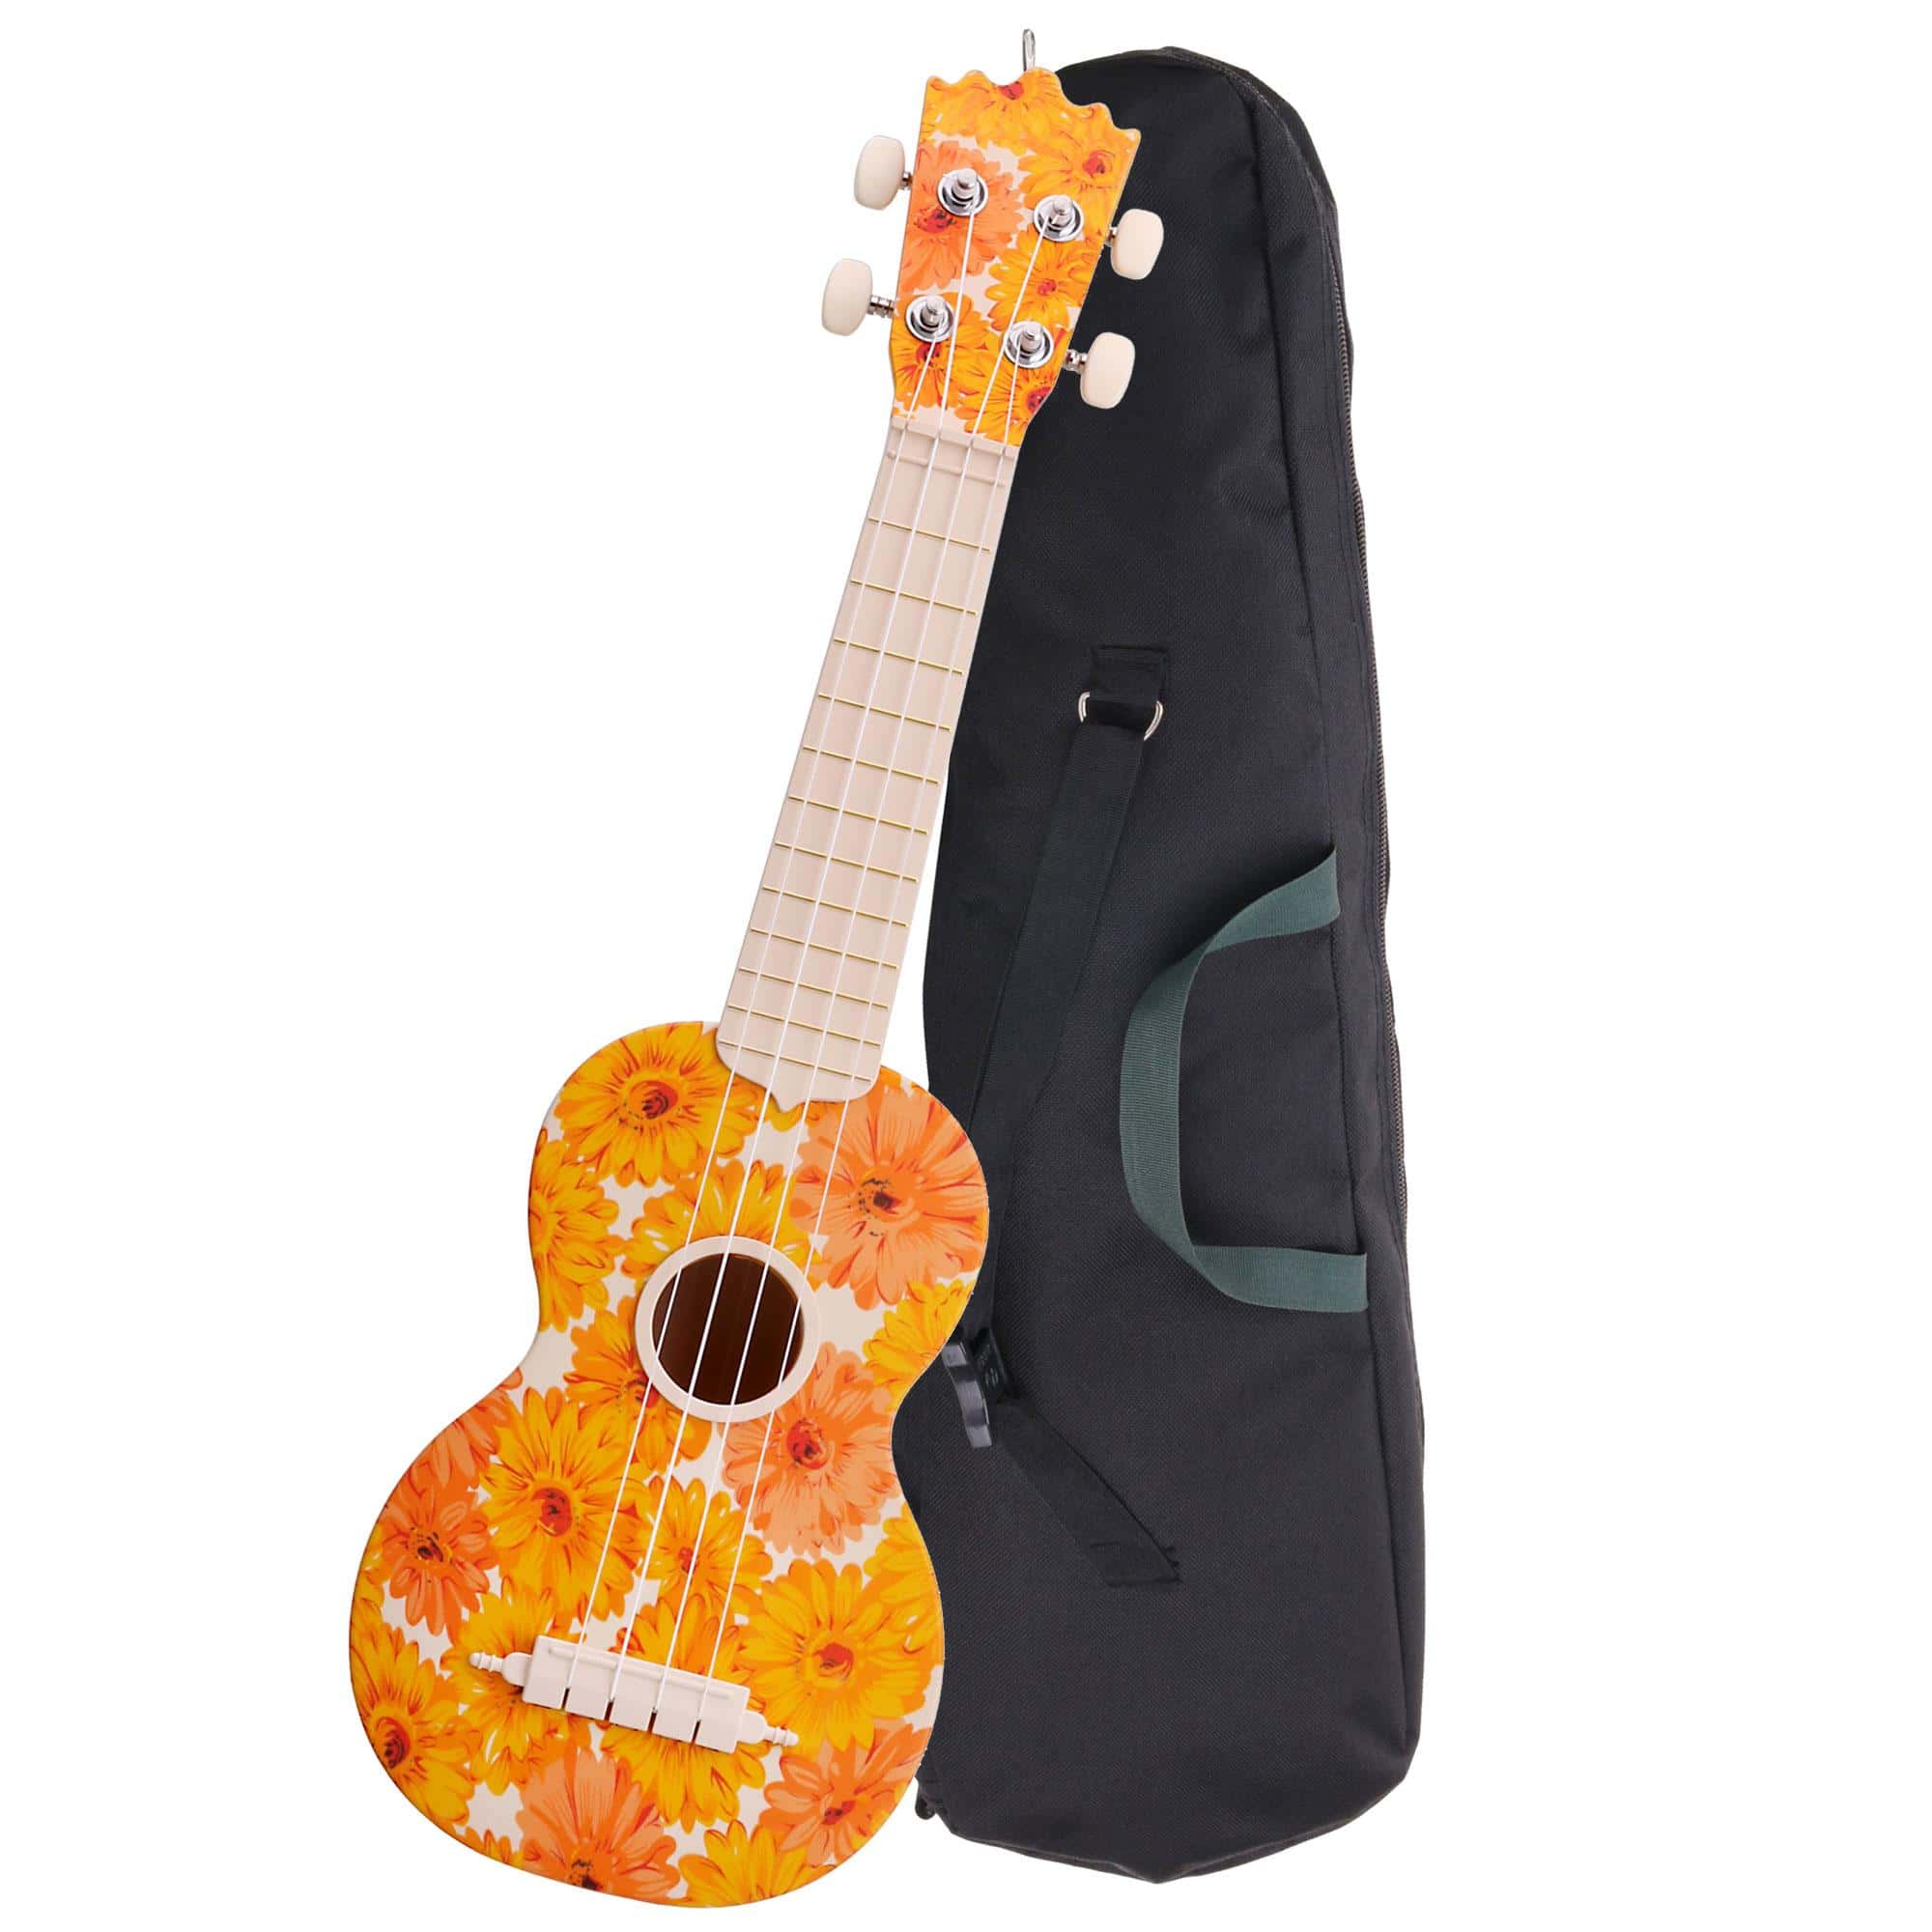 Classic Cantabile BeachBuddy Beachflower Sopran Ukulele, ABS